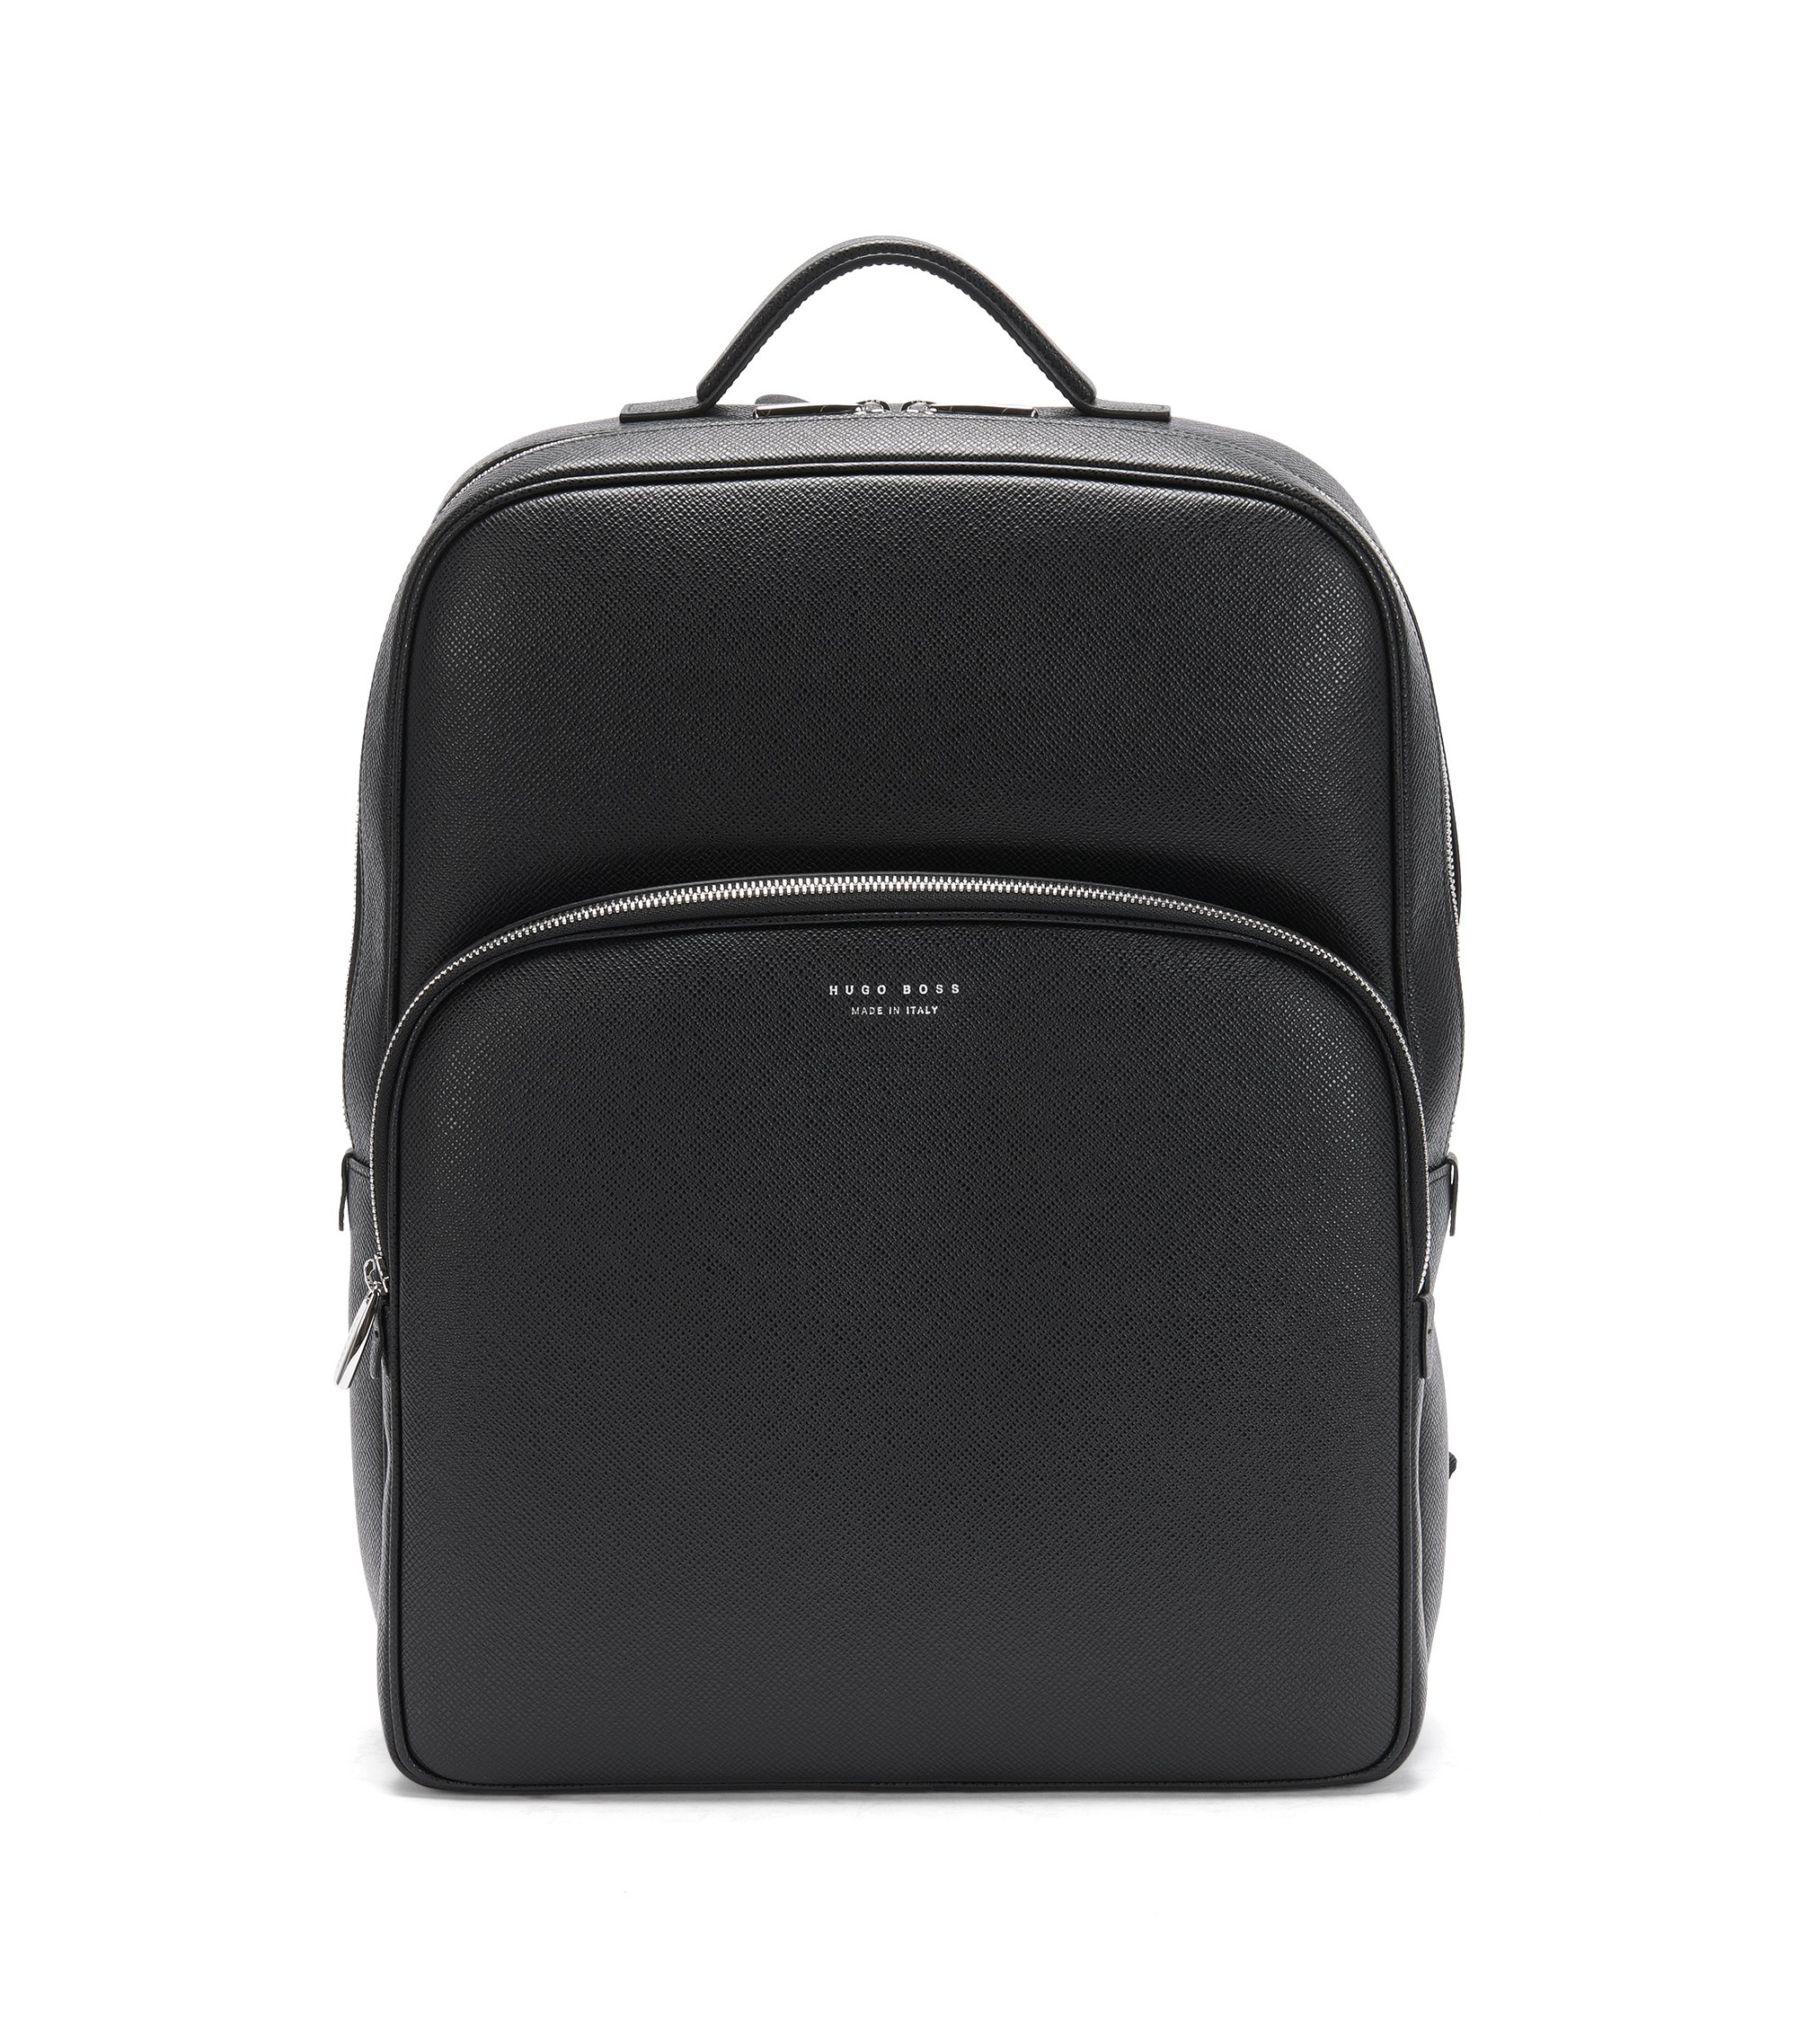 Calfskin Palmellato Backpack | Signature B Backpack, Black